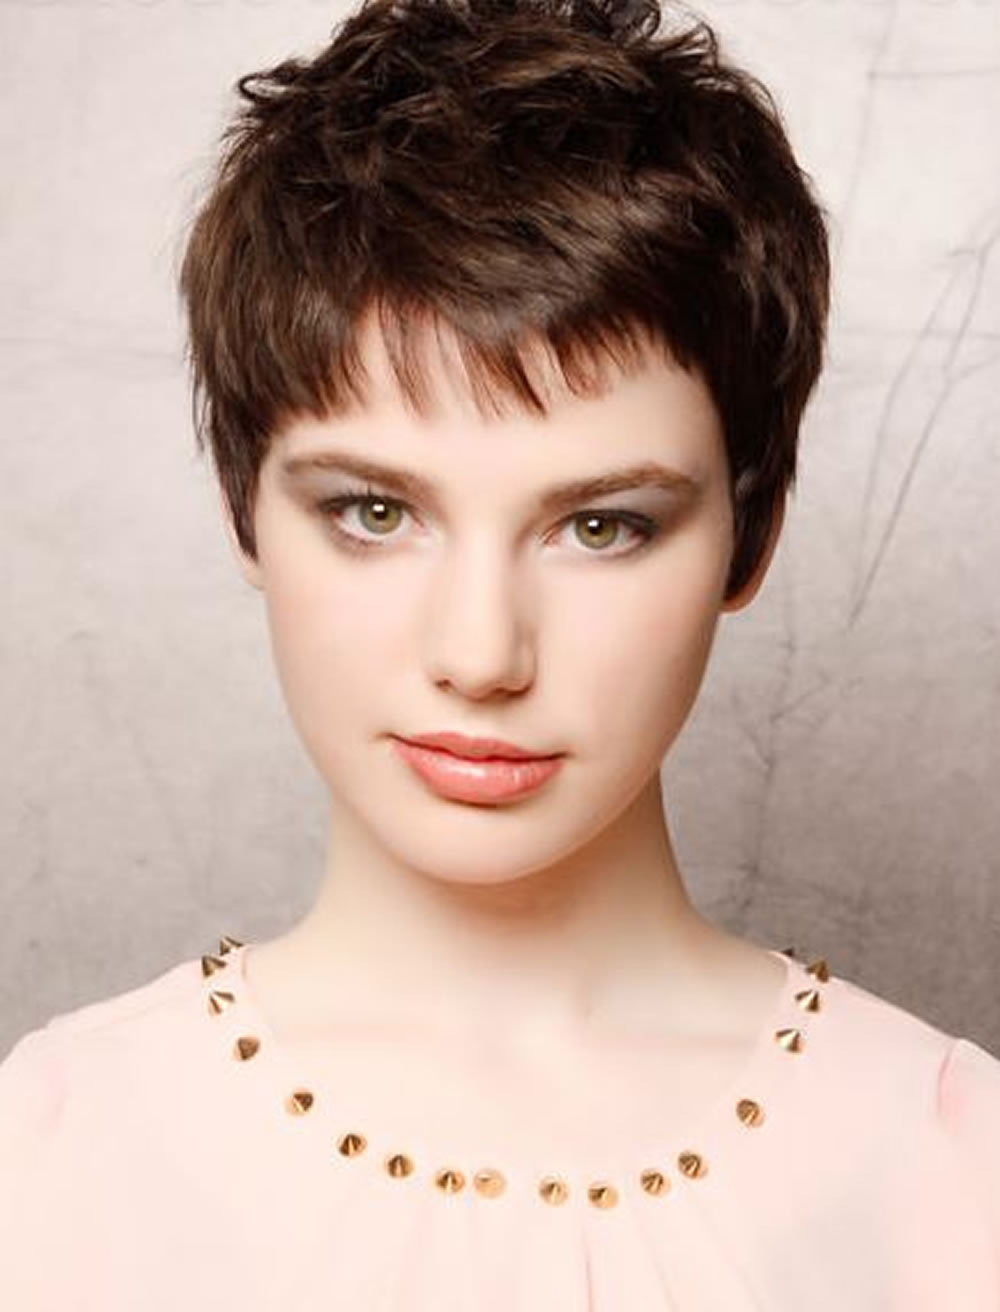 Awe Inspiring Short Pixie Hairstyles 2019 In The World And The Latest Trendy Natural Hairstyles Runnerswayorg